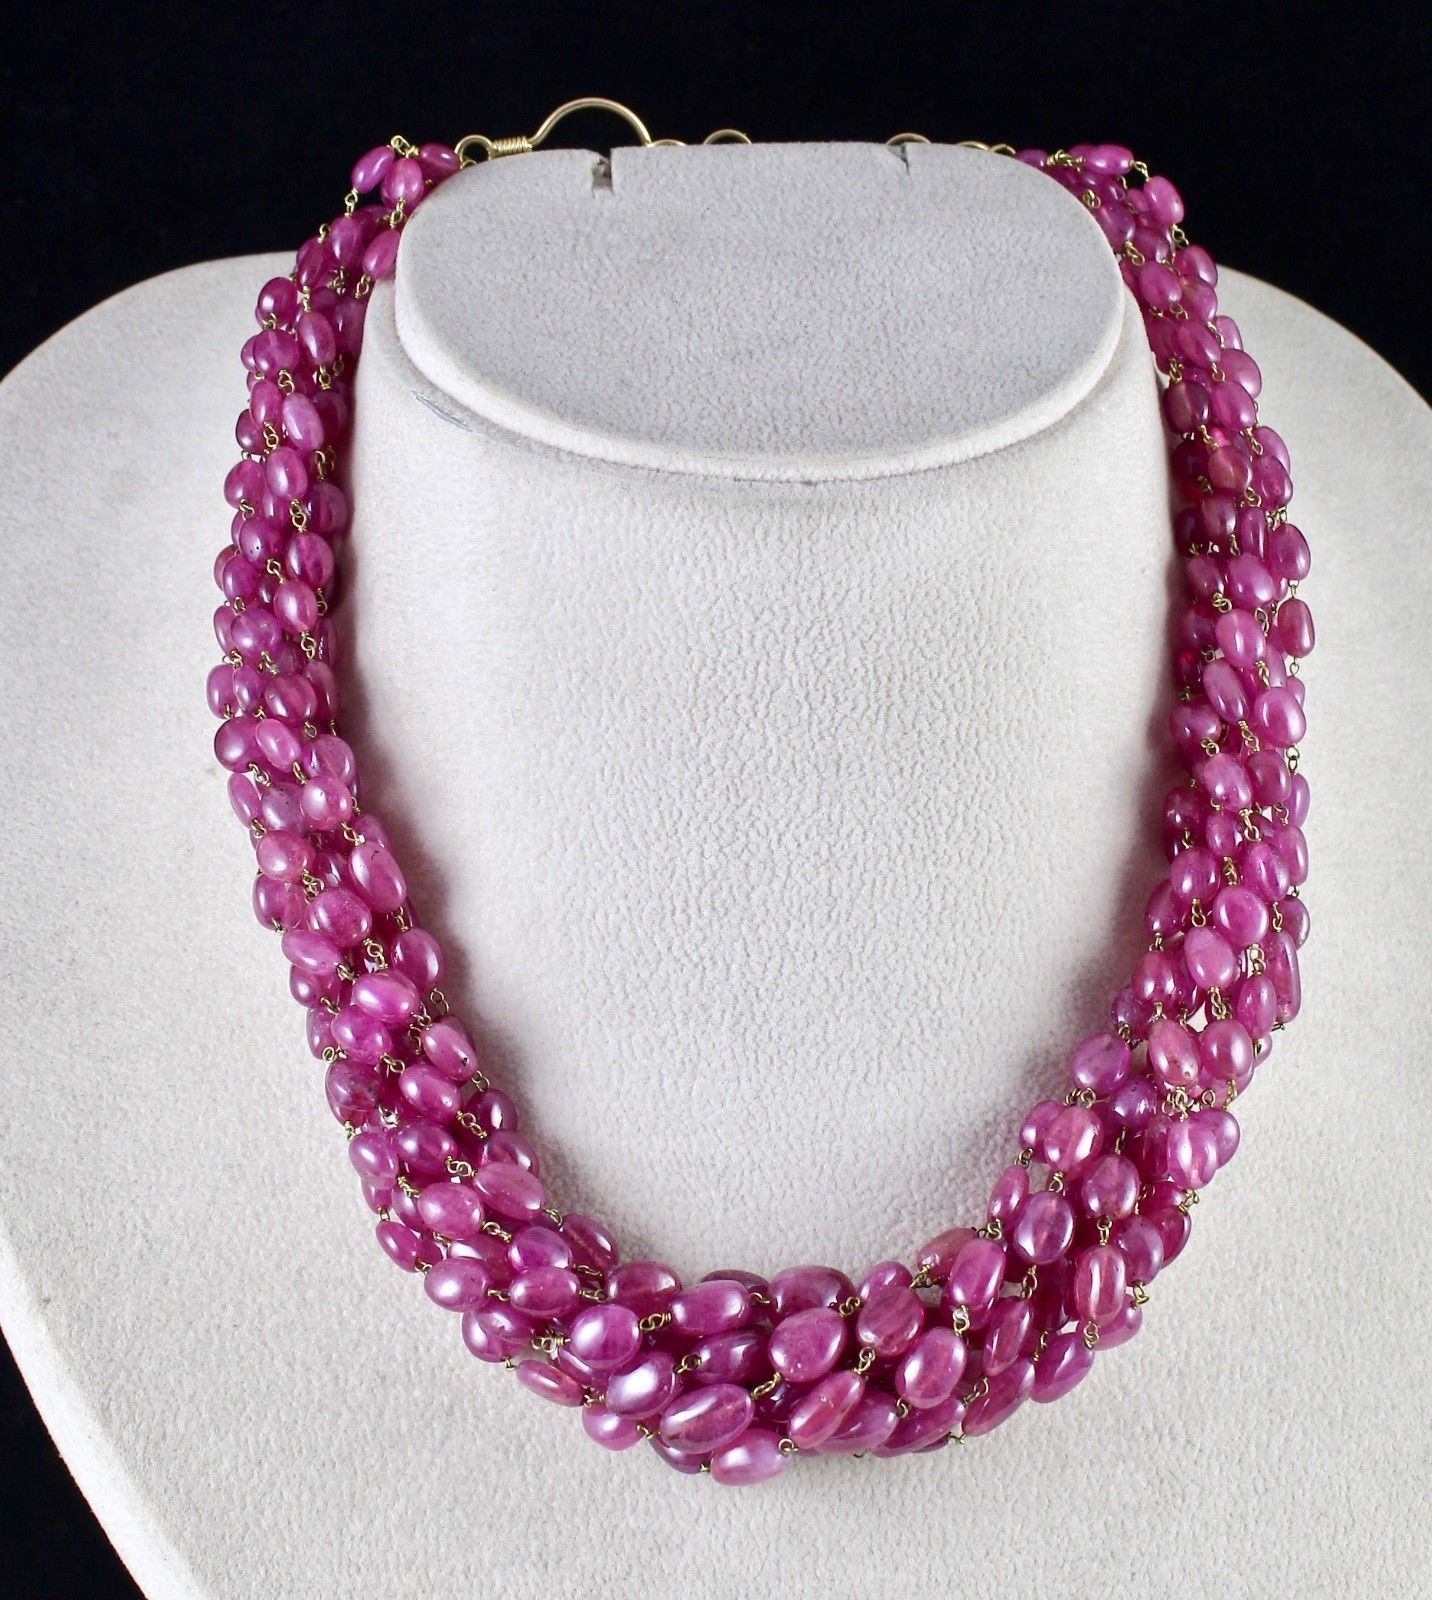 PINK RUBY BEADS CABOCHON 9 LINE 780 CARATS GEMSTONE 18K GOLD LADIES NECKLACE image 2